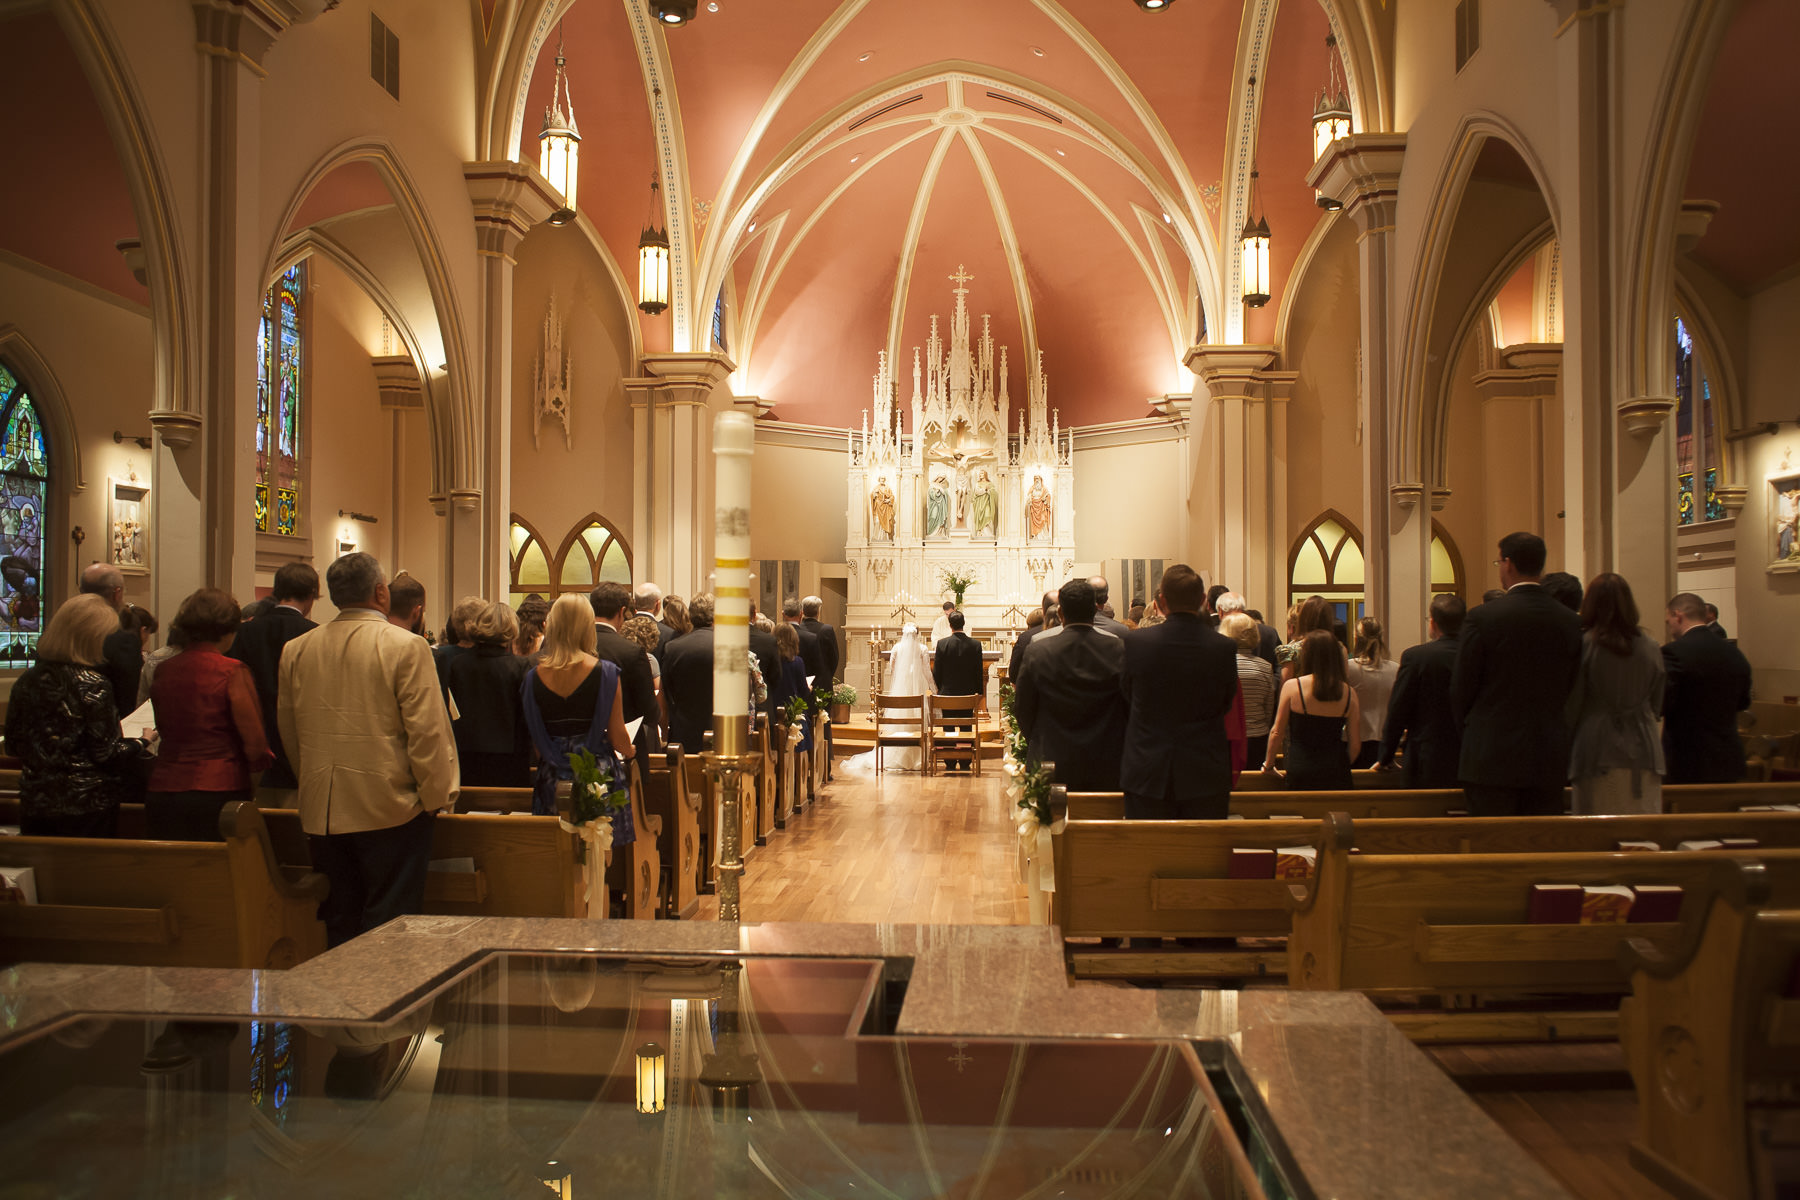 Catholic edding ceremony in the sanctuary at St. Mary's Cathedral in Colorado Springs.